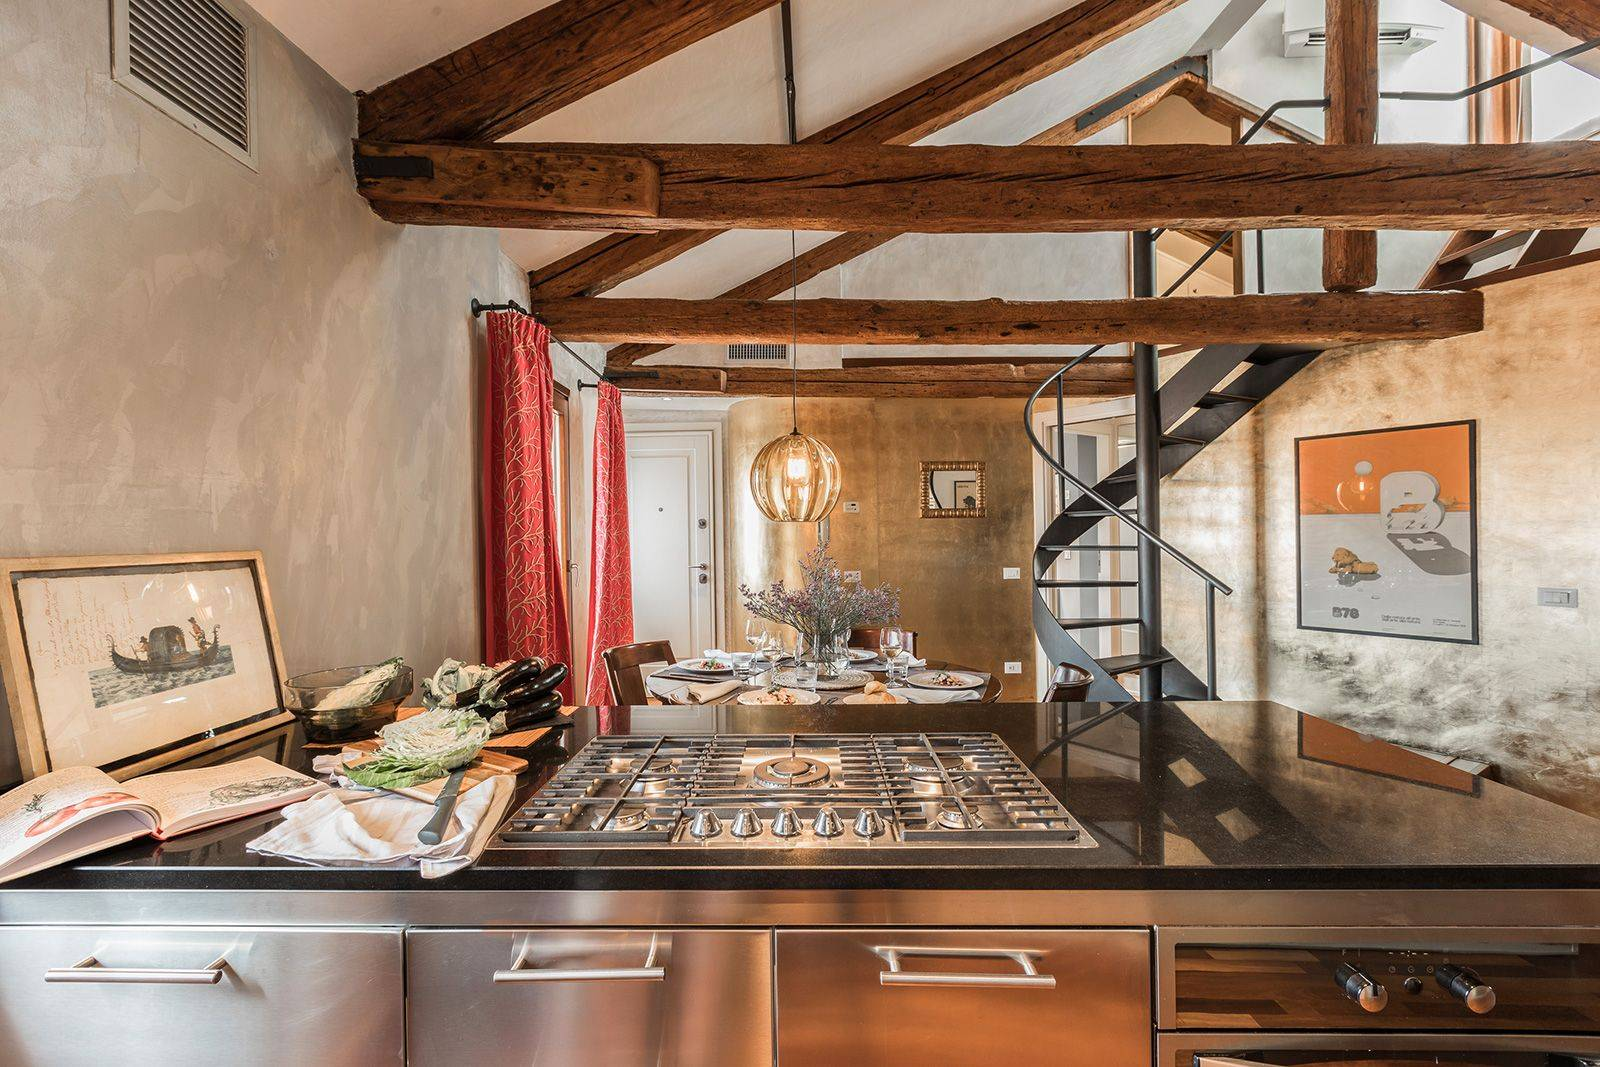 the stylish steel kitchen fits perfectly in the traditional Venetian architecture